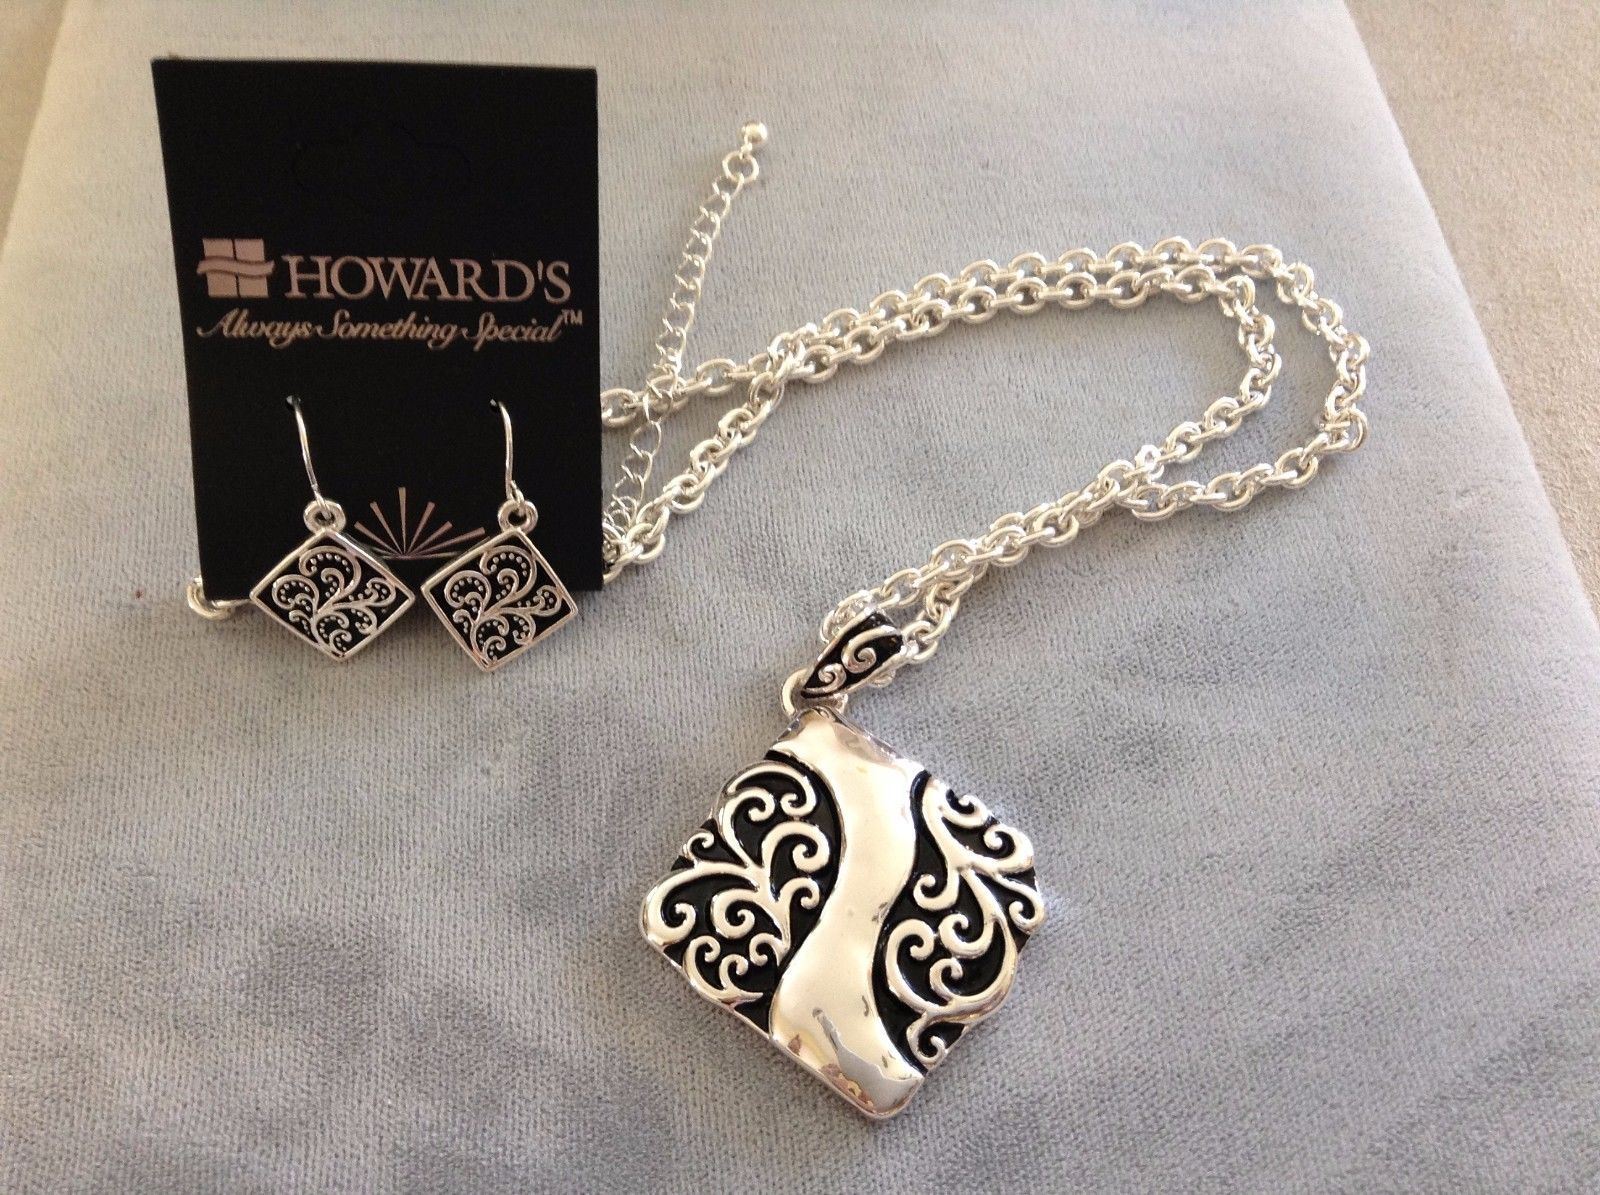 New Howards Necklace Earring Set Black Paisley Design White Silver Toned Square